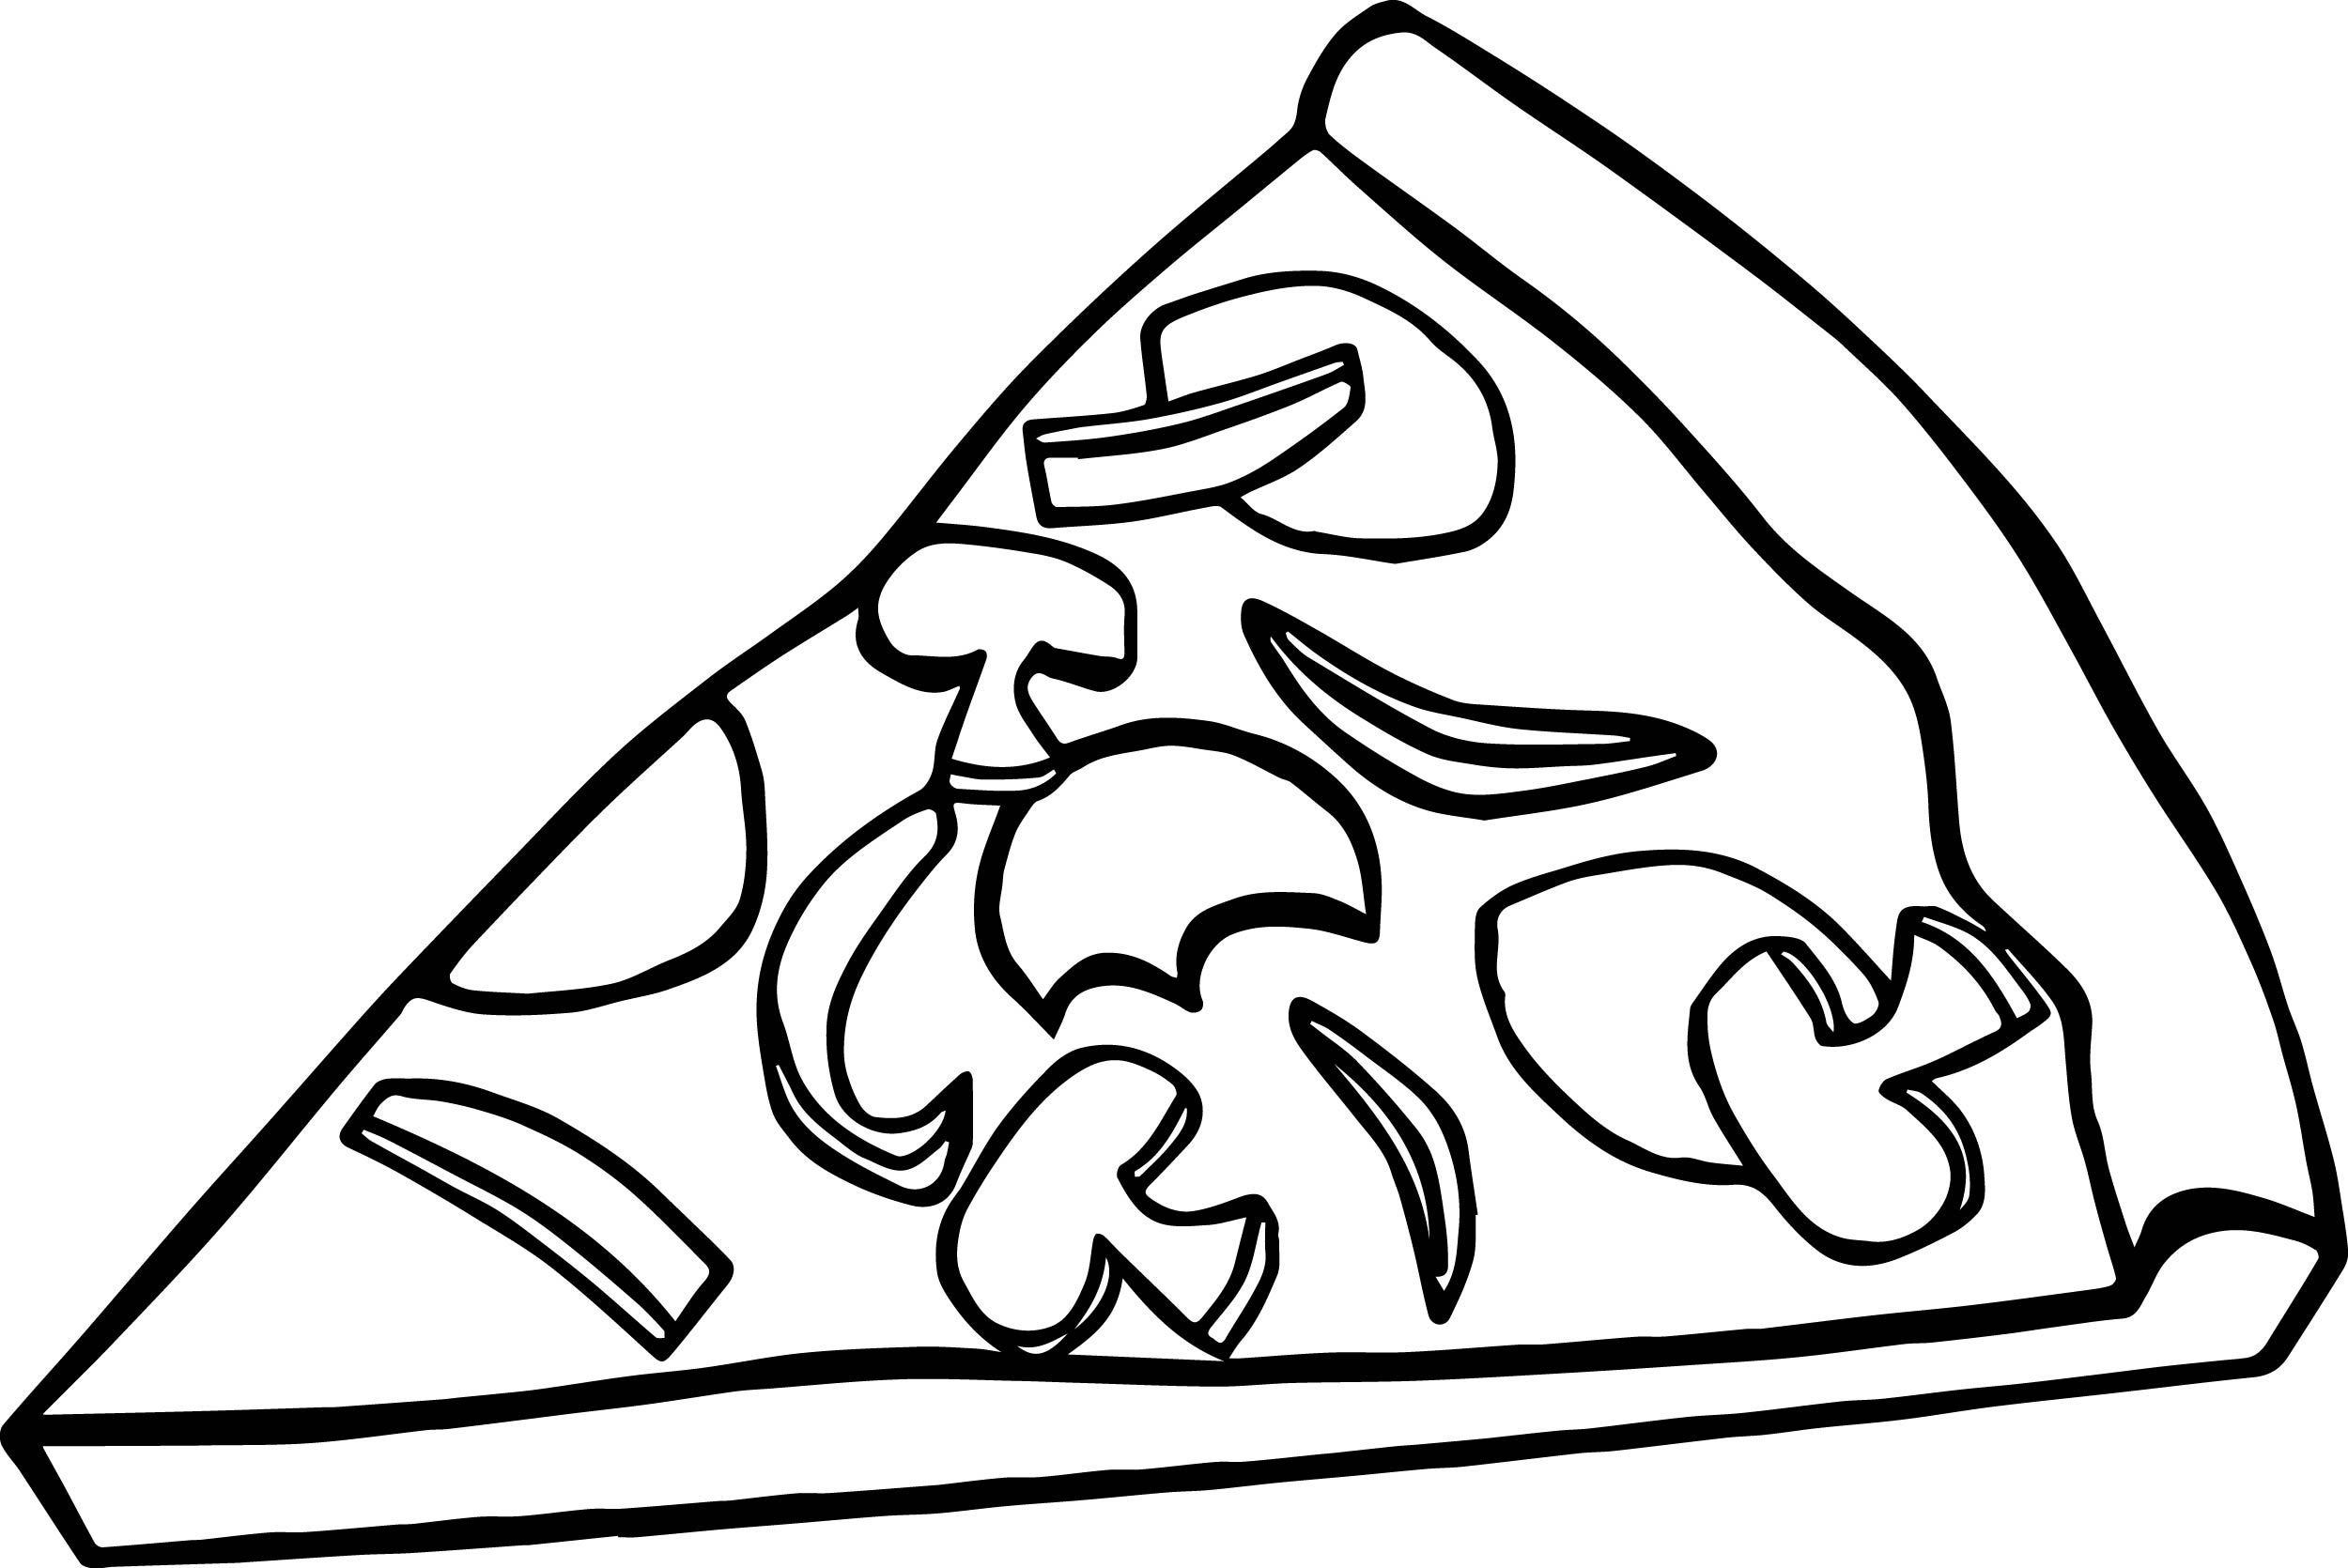 Cool Pepperoni Pizza Slice Coloring Page With Images Food